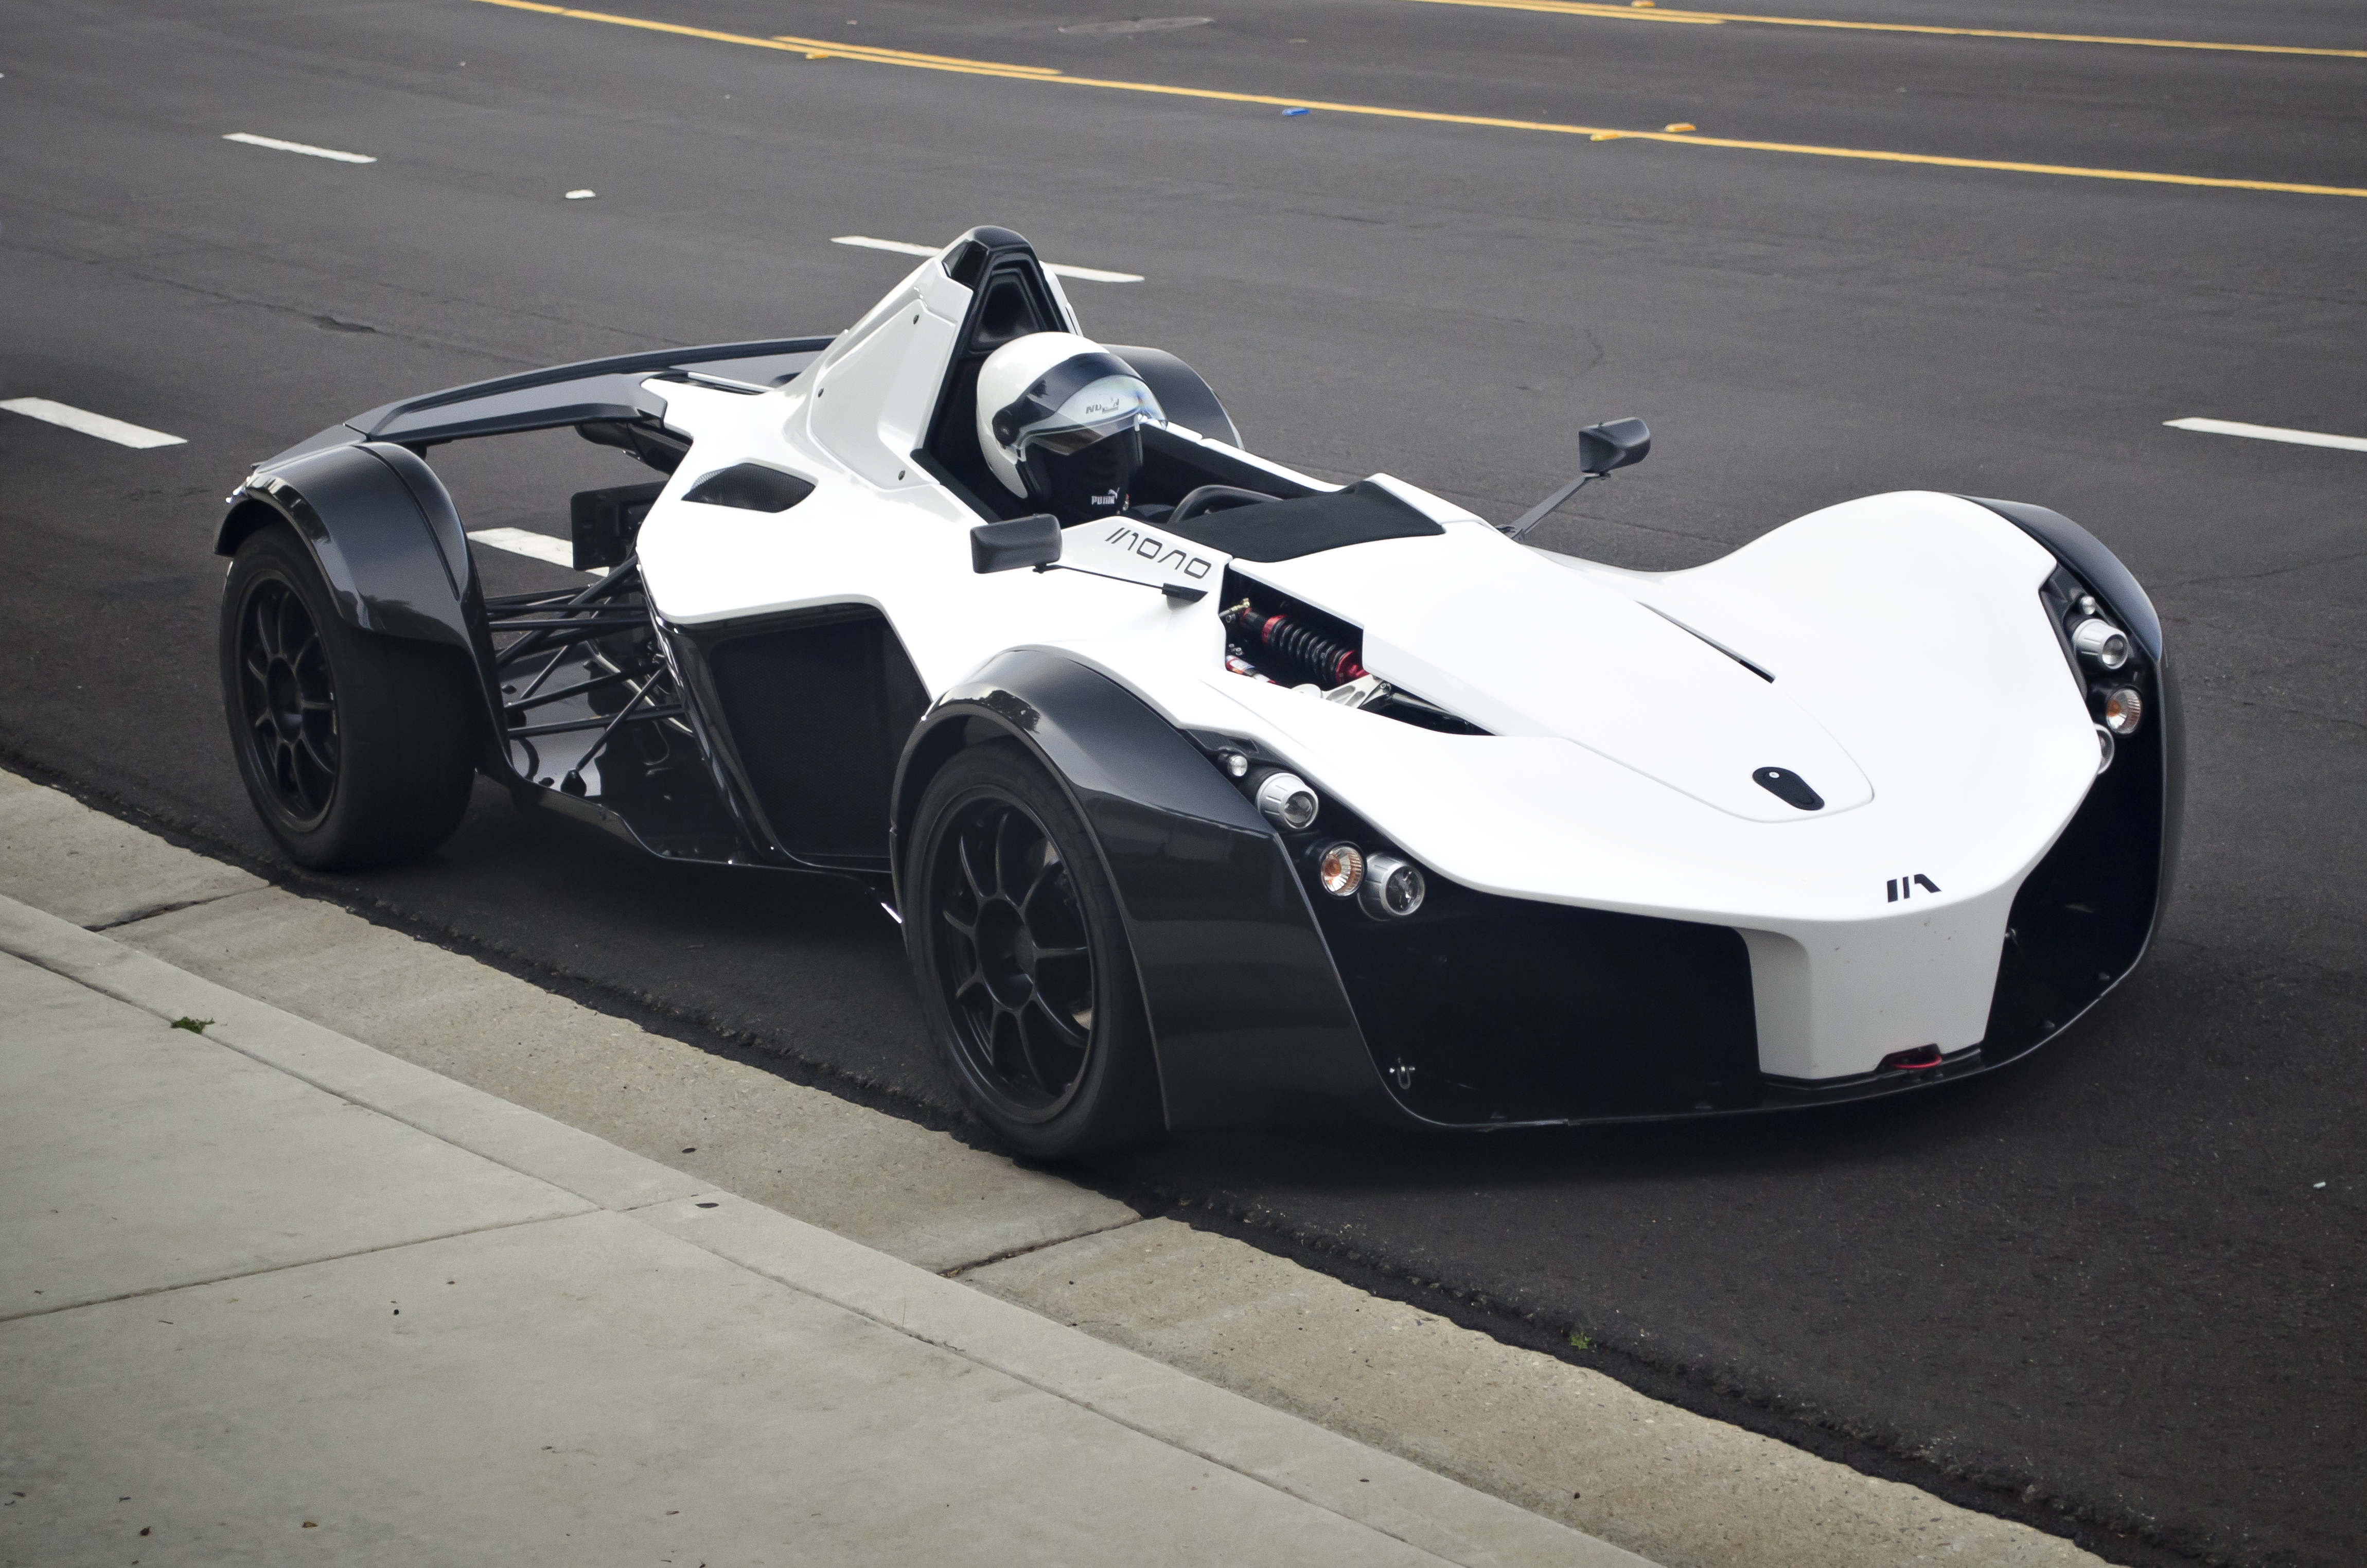 The Bac Mono Loosens Up A Little Accepts Larger Persons